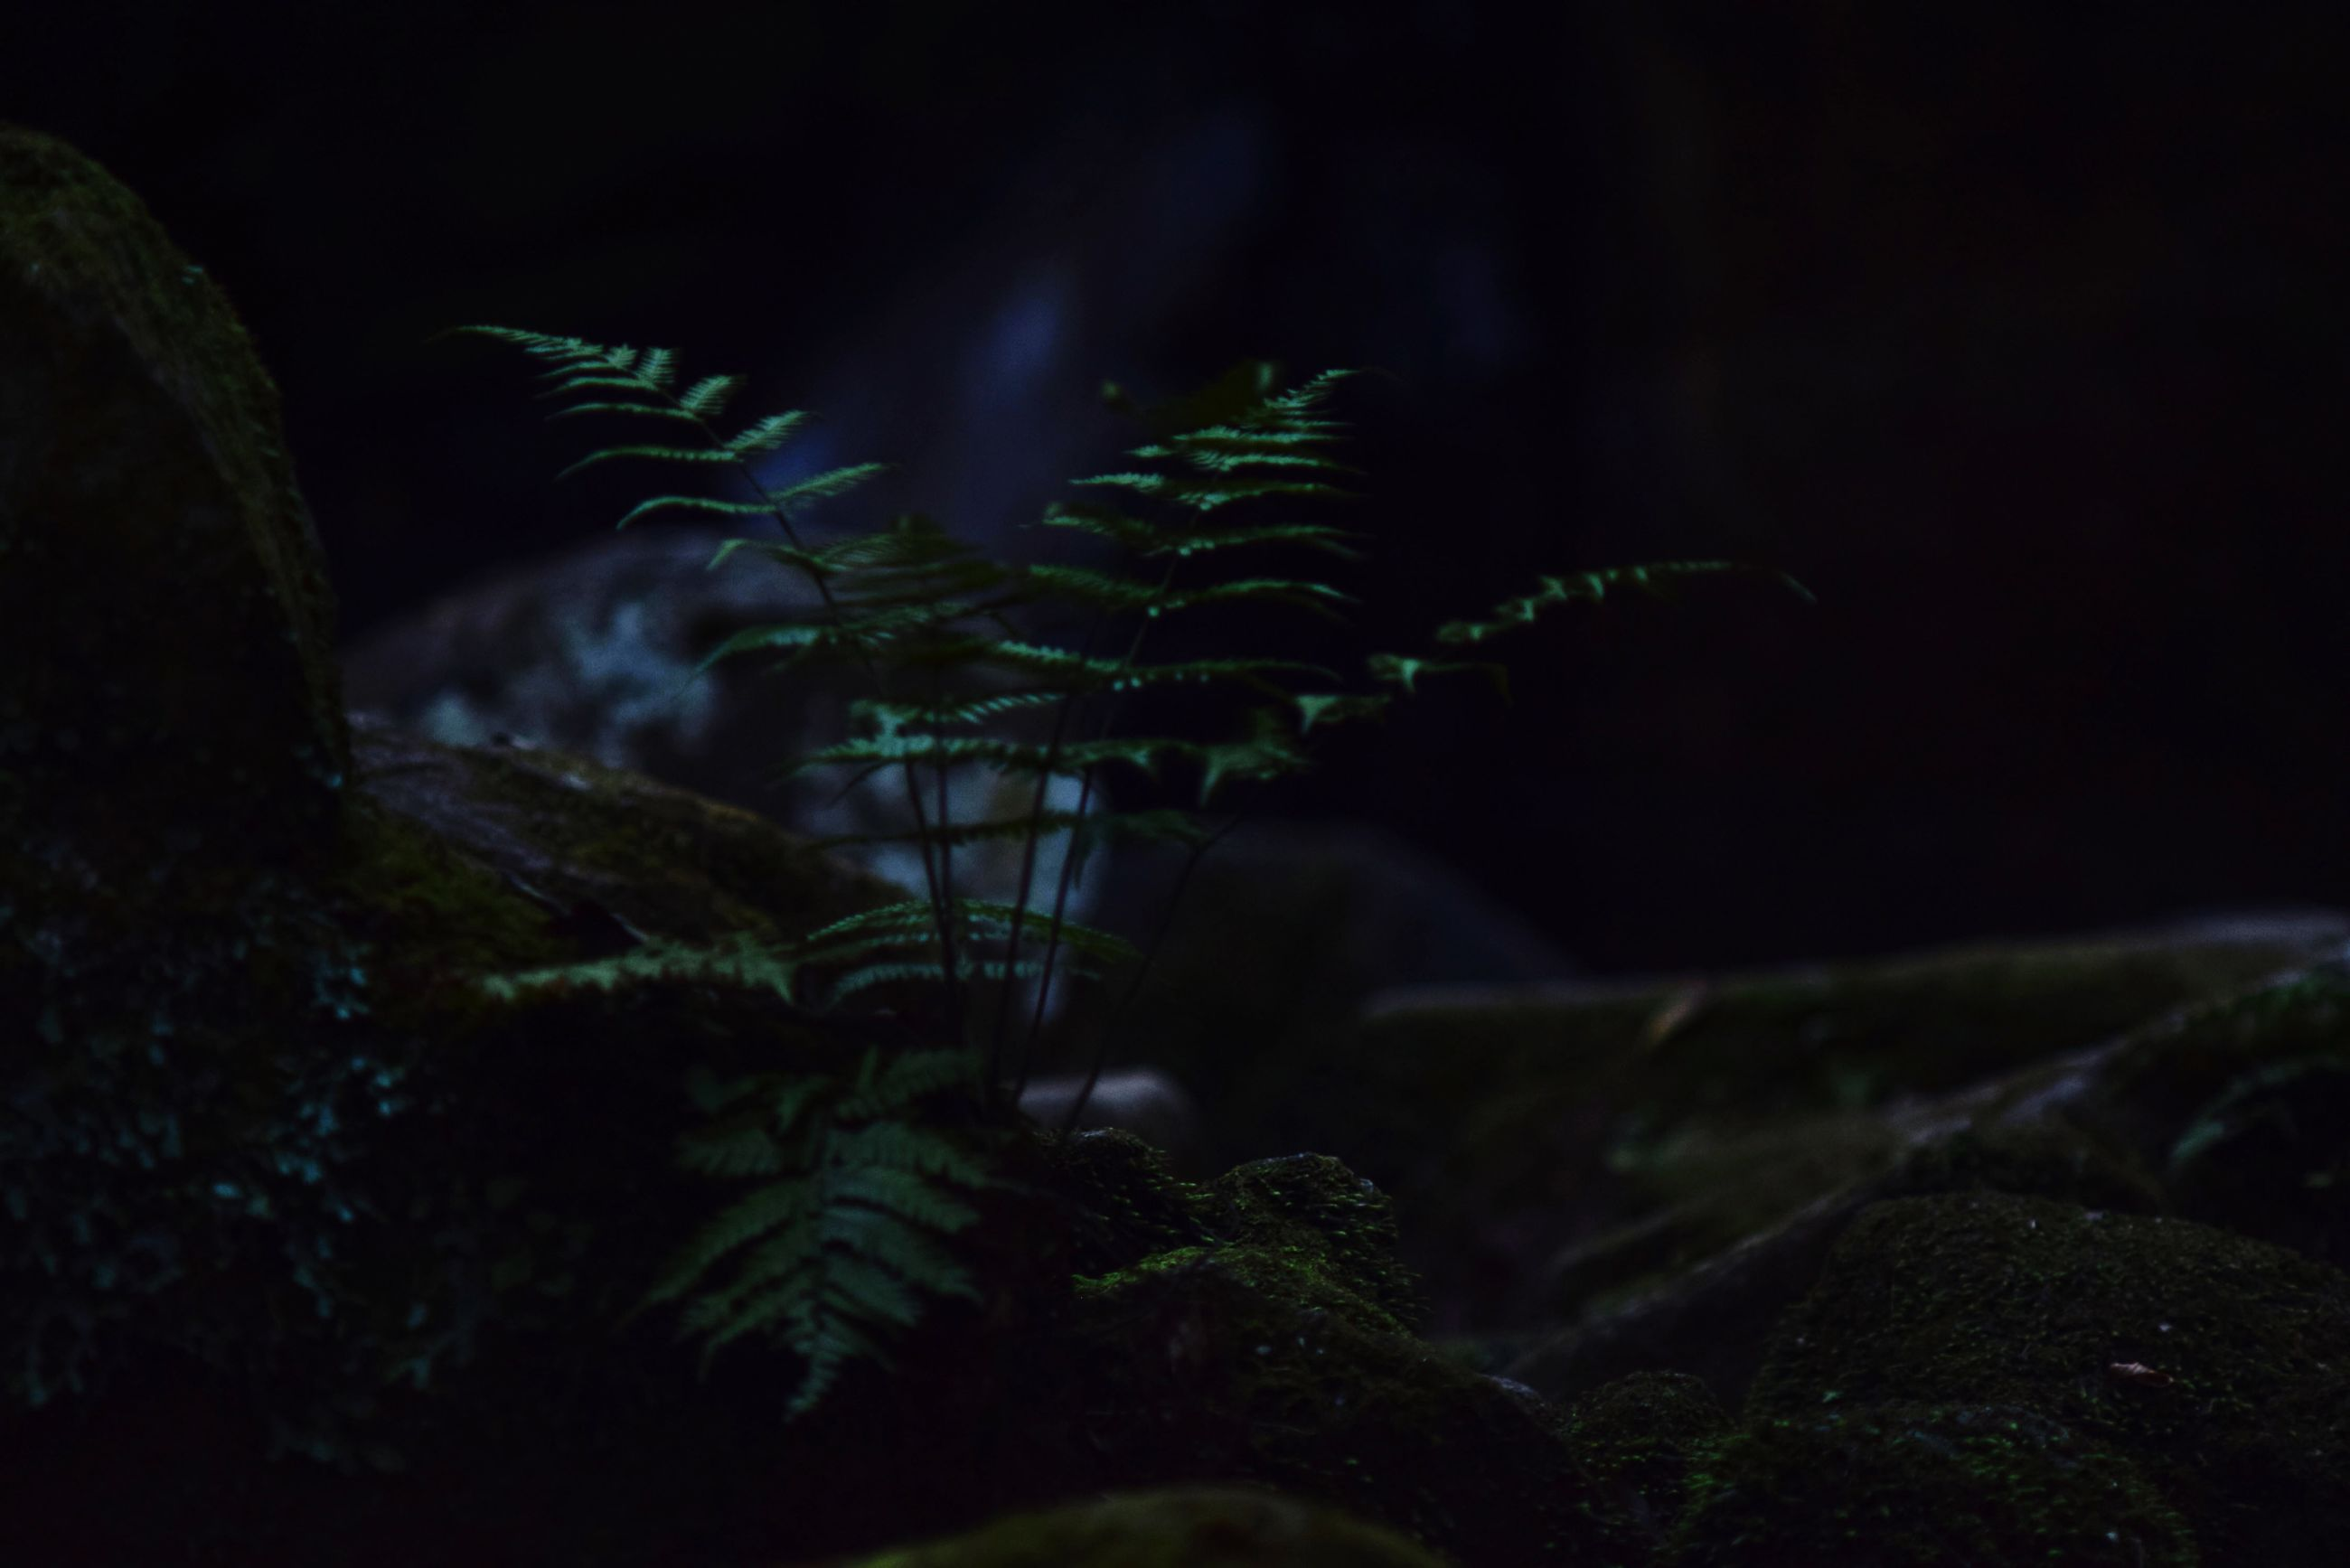 night, growth, plant, leaf, green color, nature, close-up, selective focus, dark, tranquility, beauty in nature, focus on foreground, outdoors, forest, no people, growing, tree, moss, rock - object